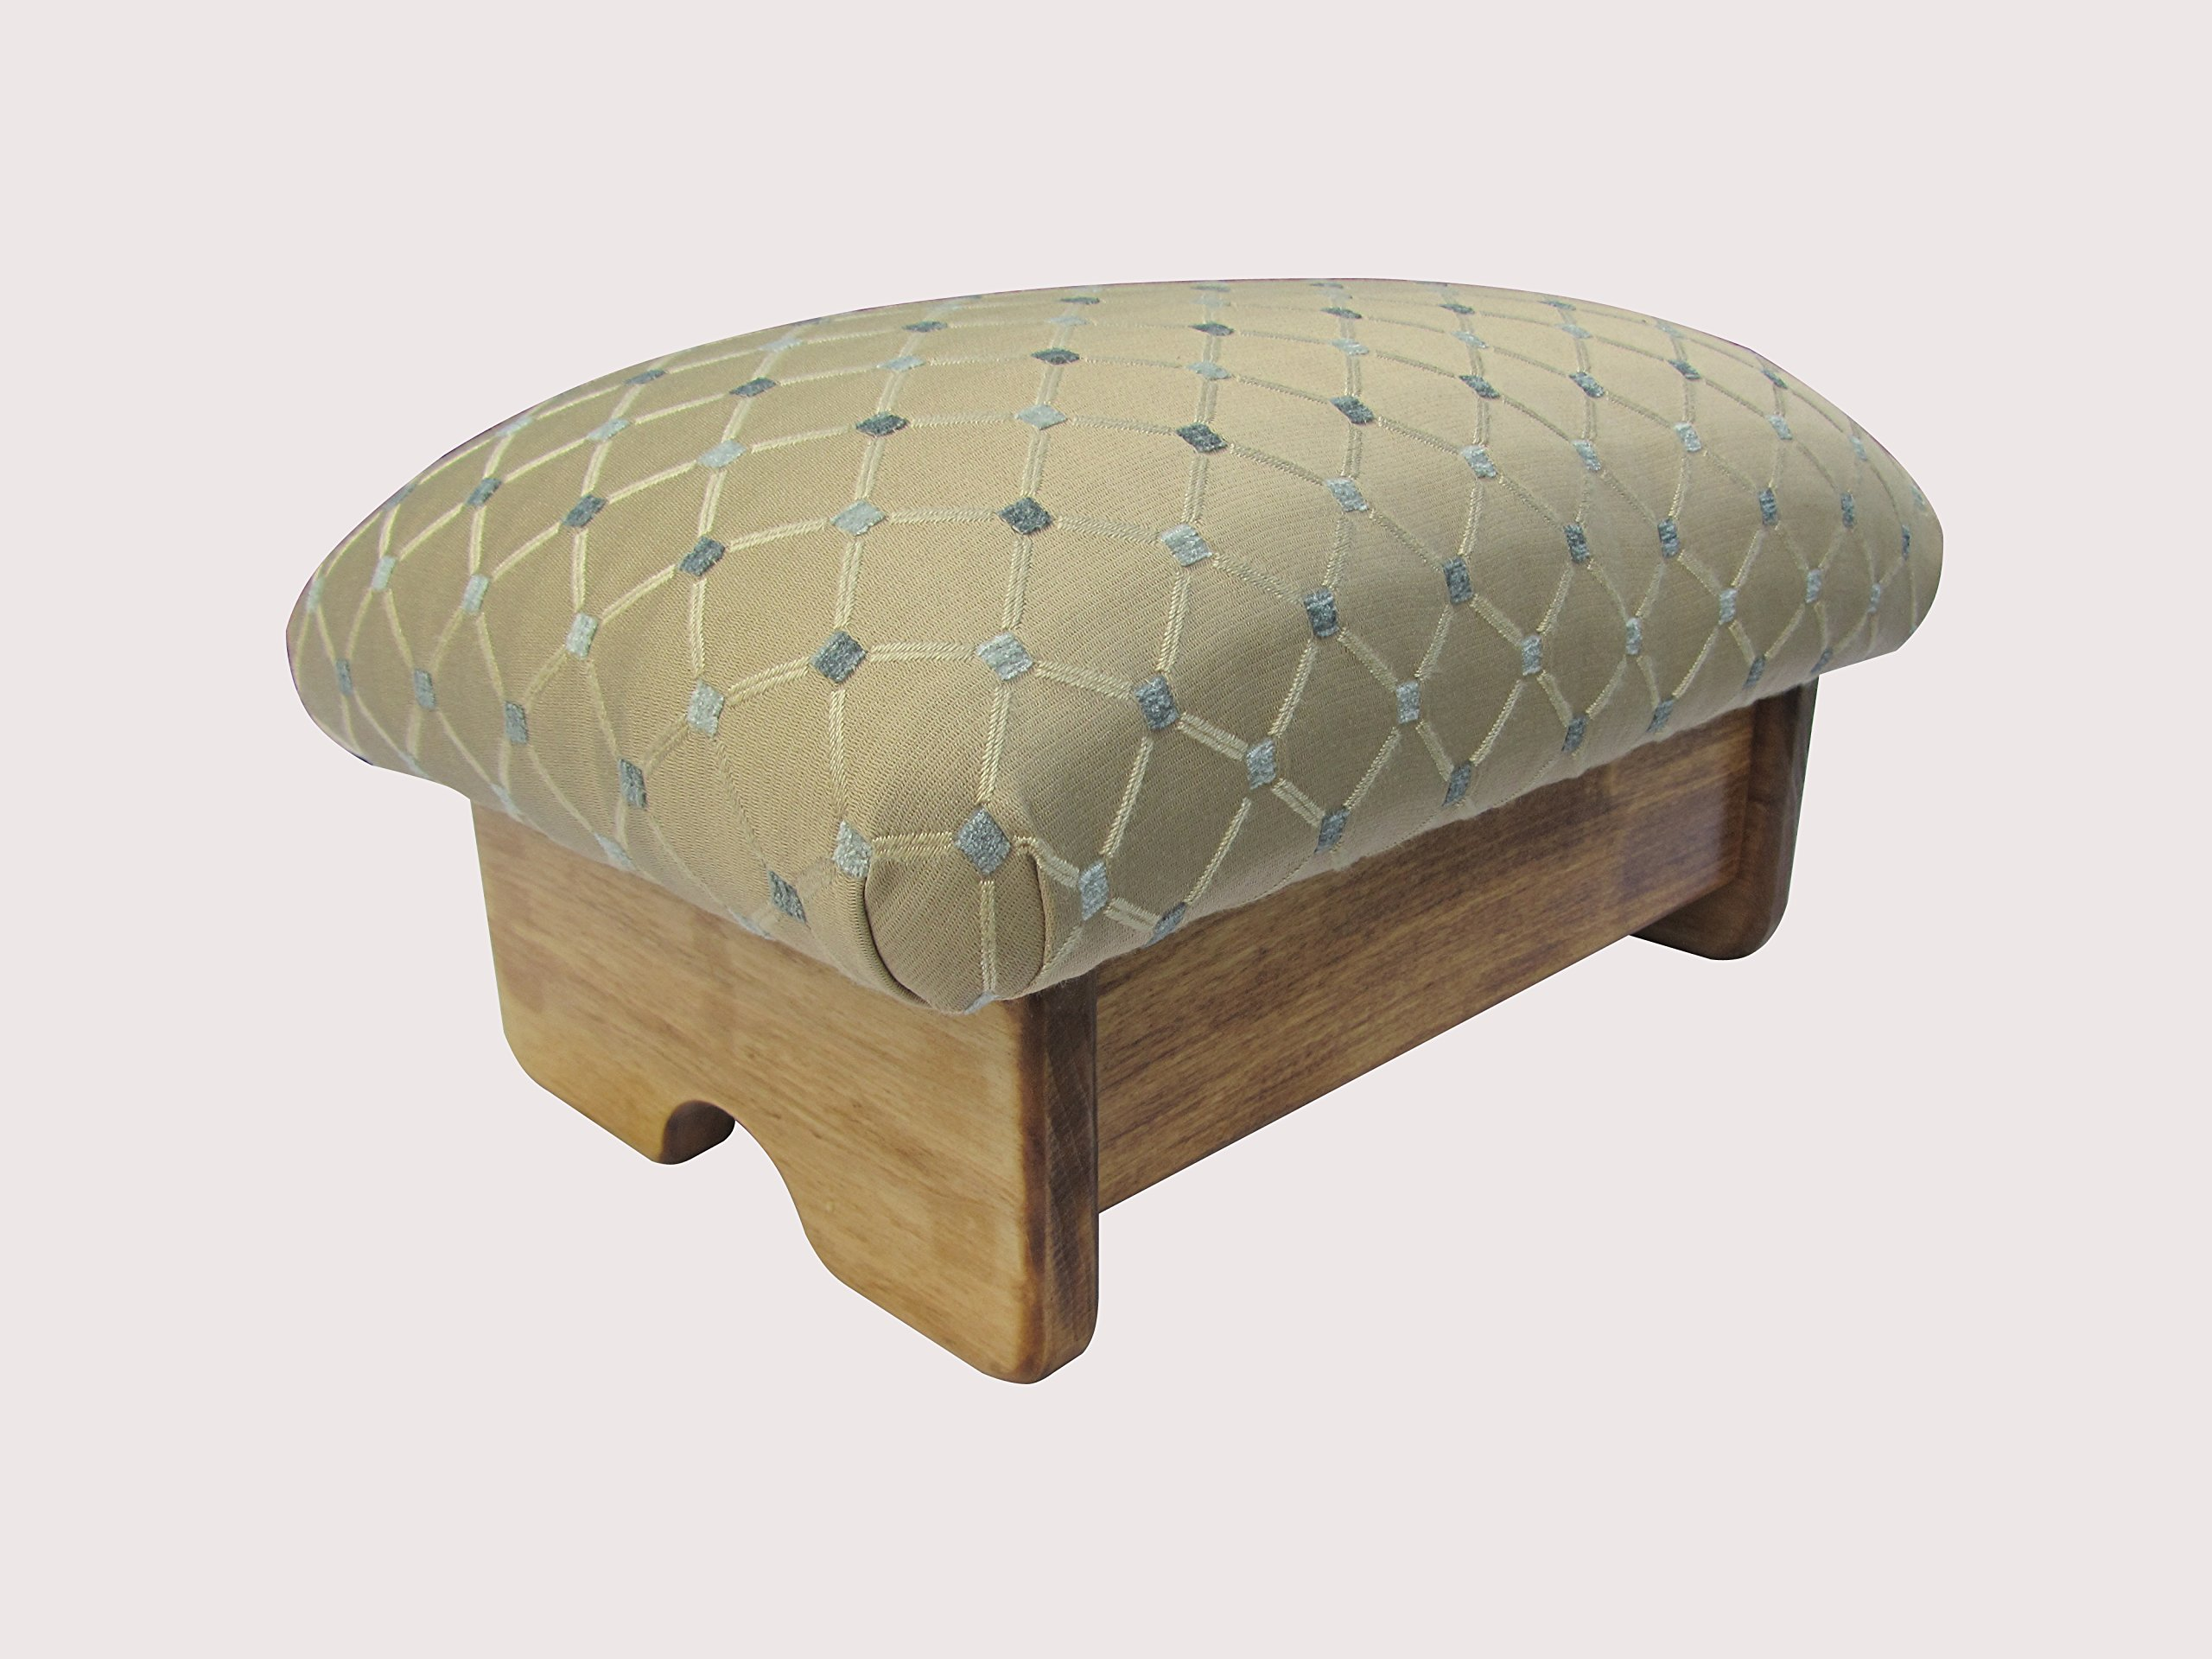 KR Ideas Padded Foot Stool Queen's Favorite (Made in the USA) (9'' Tall - Maple Stain) by KR Ideas